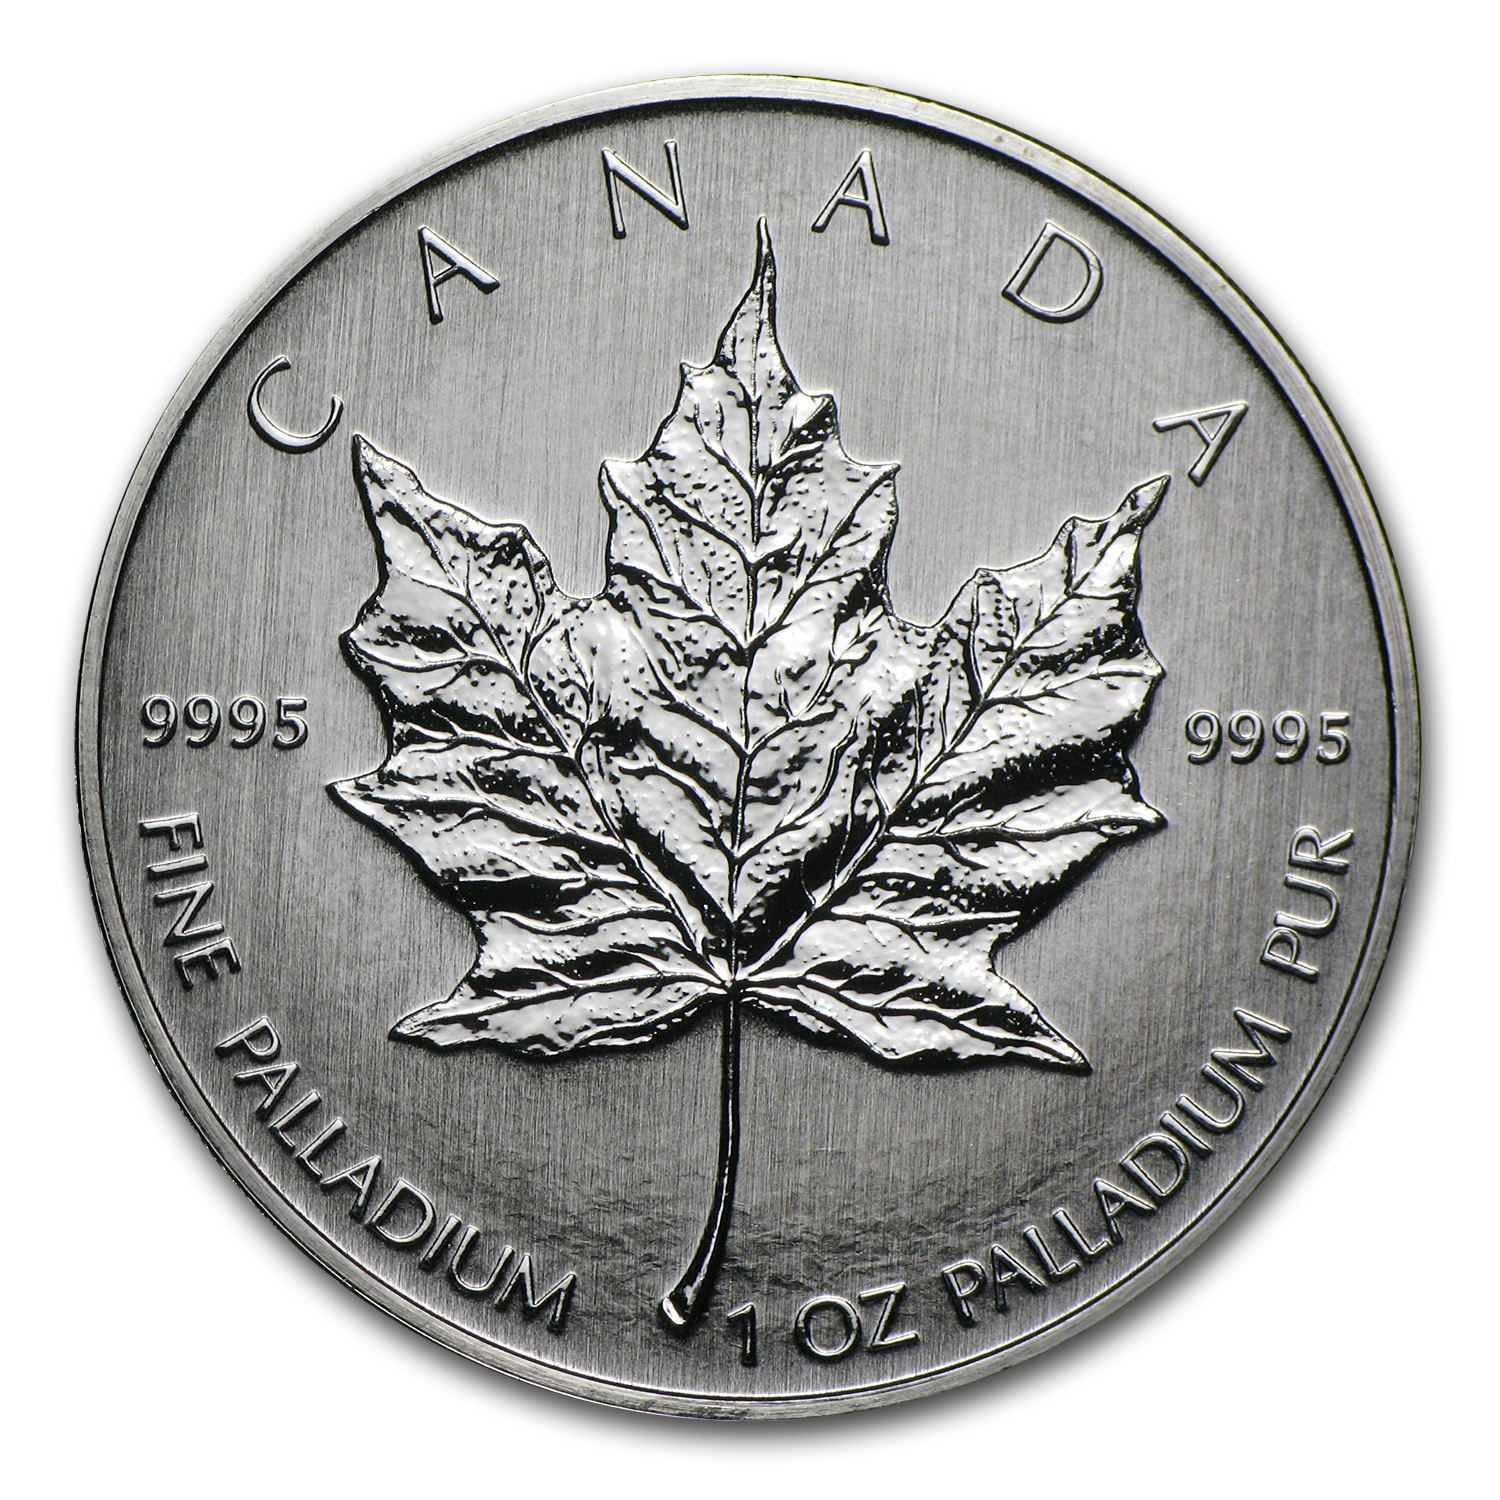 2009 1 oz Palladium Canadian Maple Leaf BU